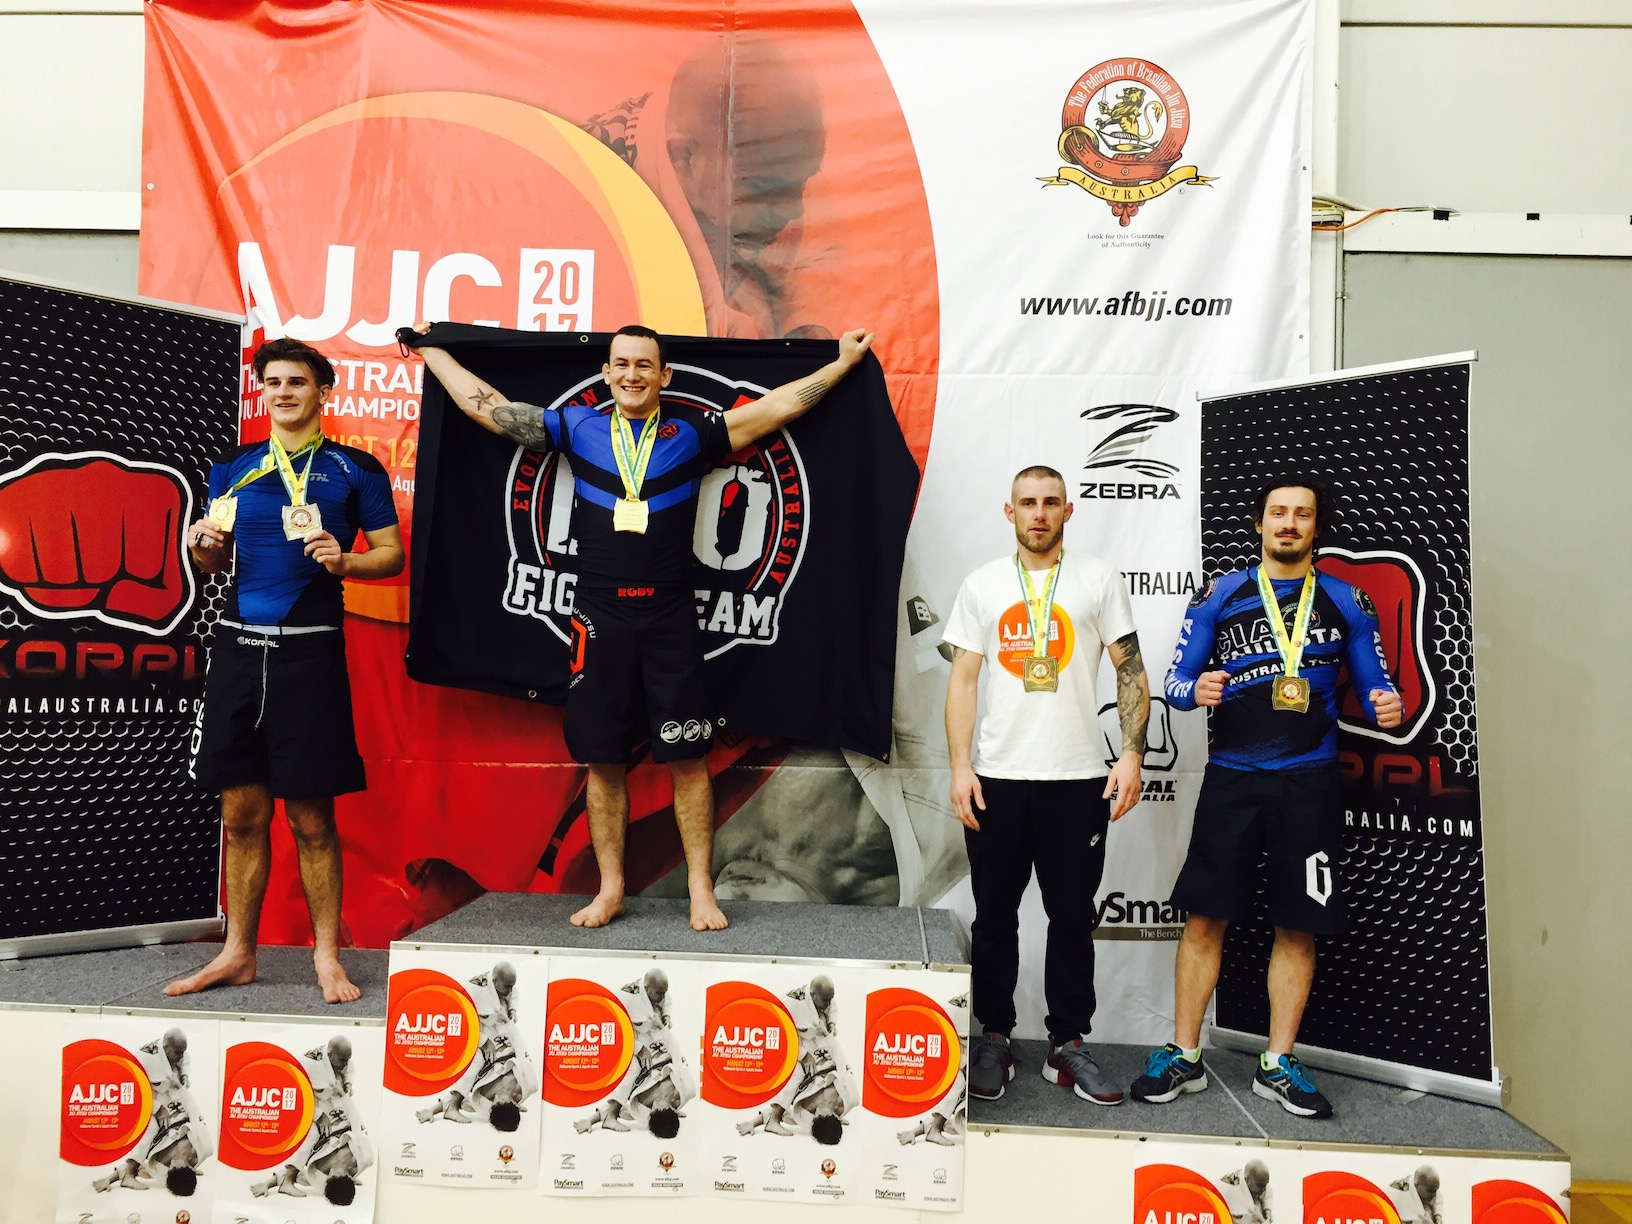 Marcel Leteri Sasso de Oliveira's Student got Bronze Medal at the 2017 AUS National